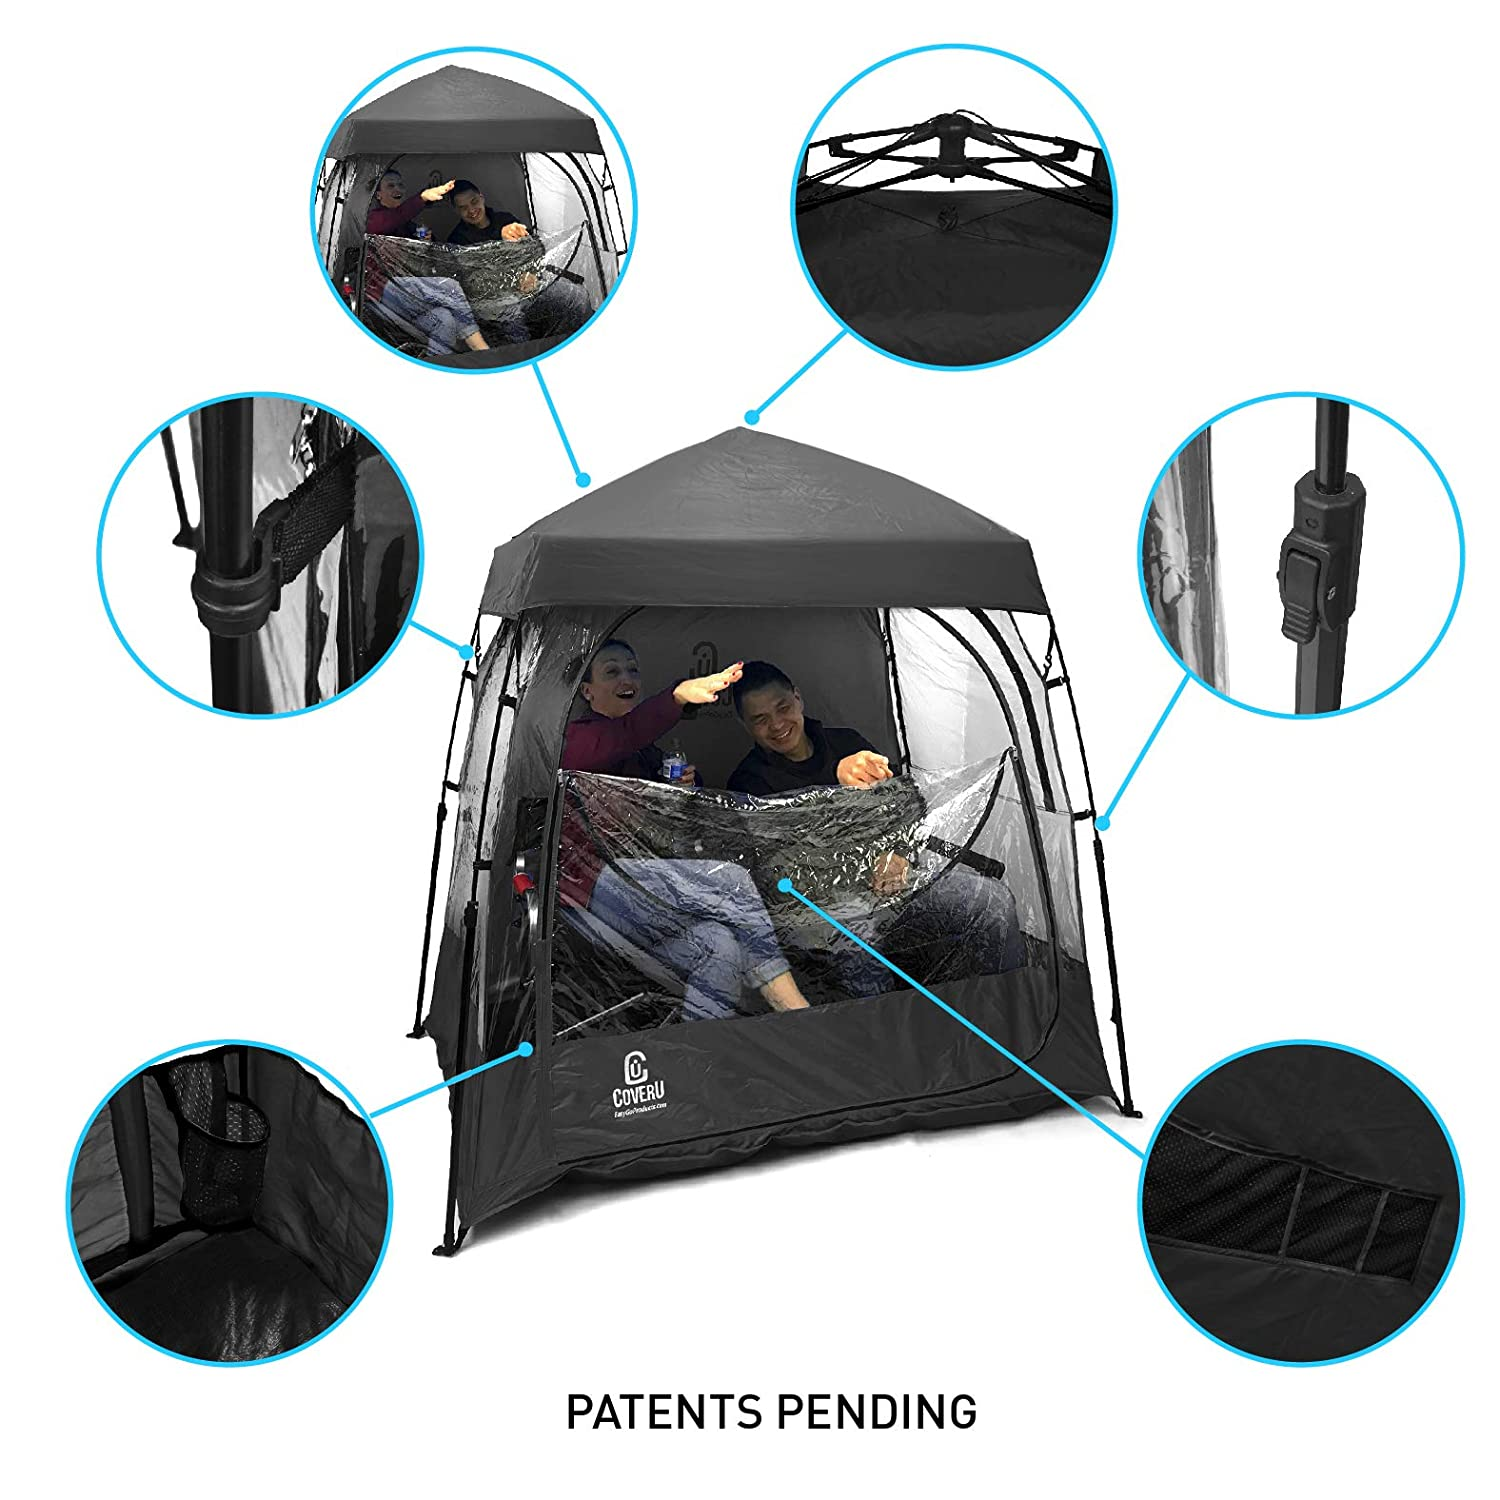 5. EasyGO CoverU Sports Shelter - 1 or 2 Person Weather Tent Pod - Patents Pending